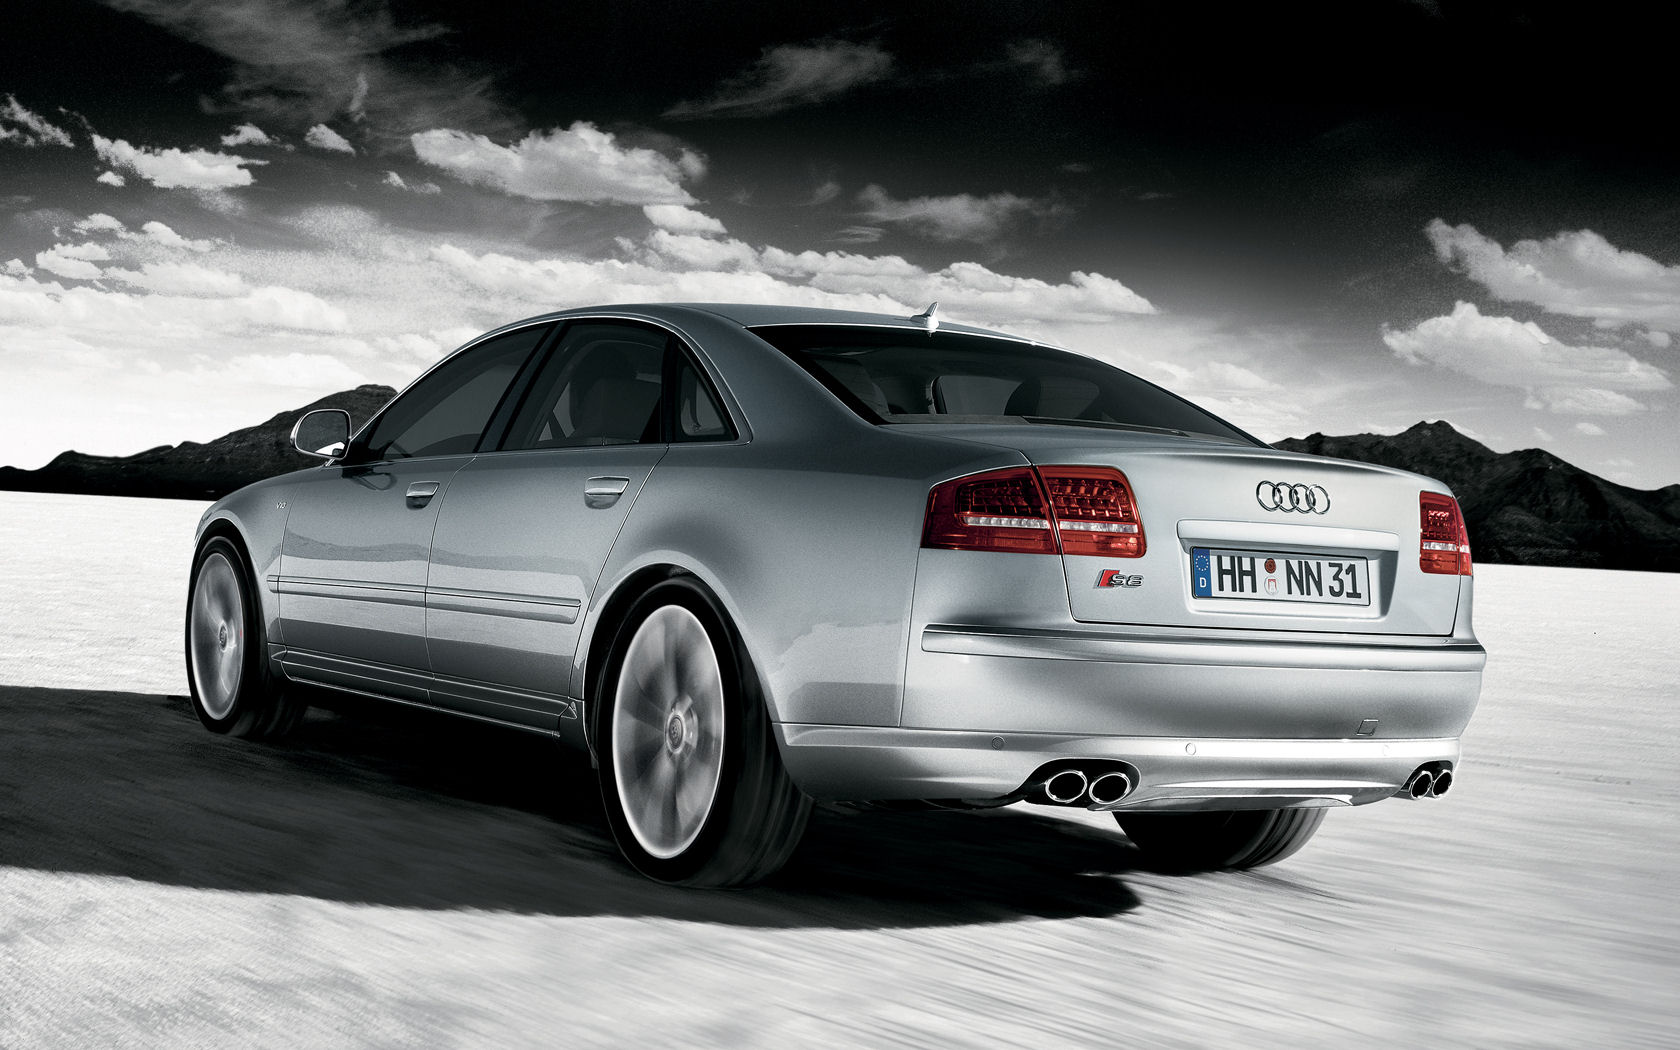 Audi A8 Wallpaper HD Photos Wallpapers and other Images   Wall 1680x1050